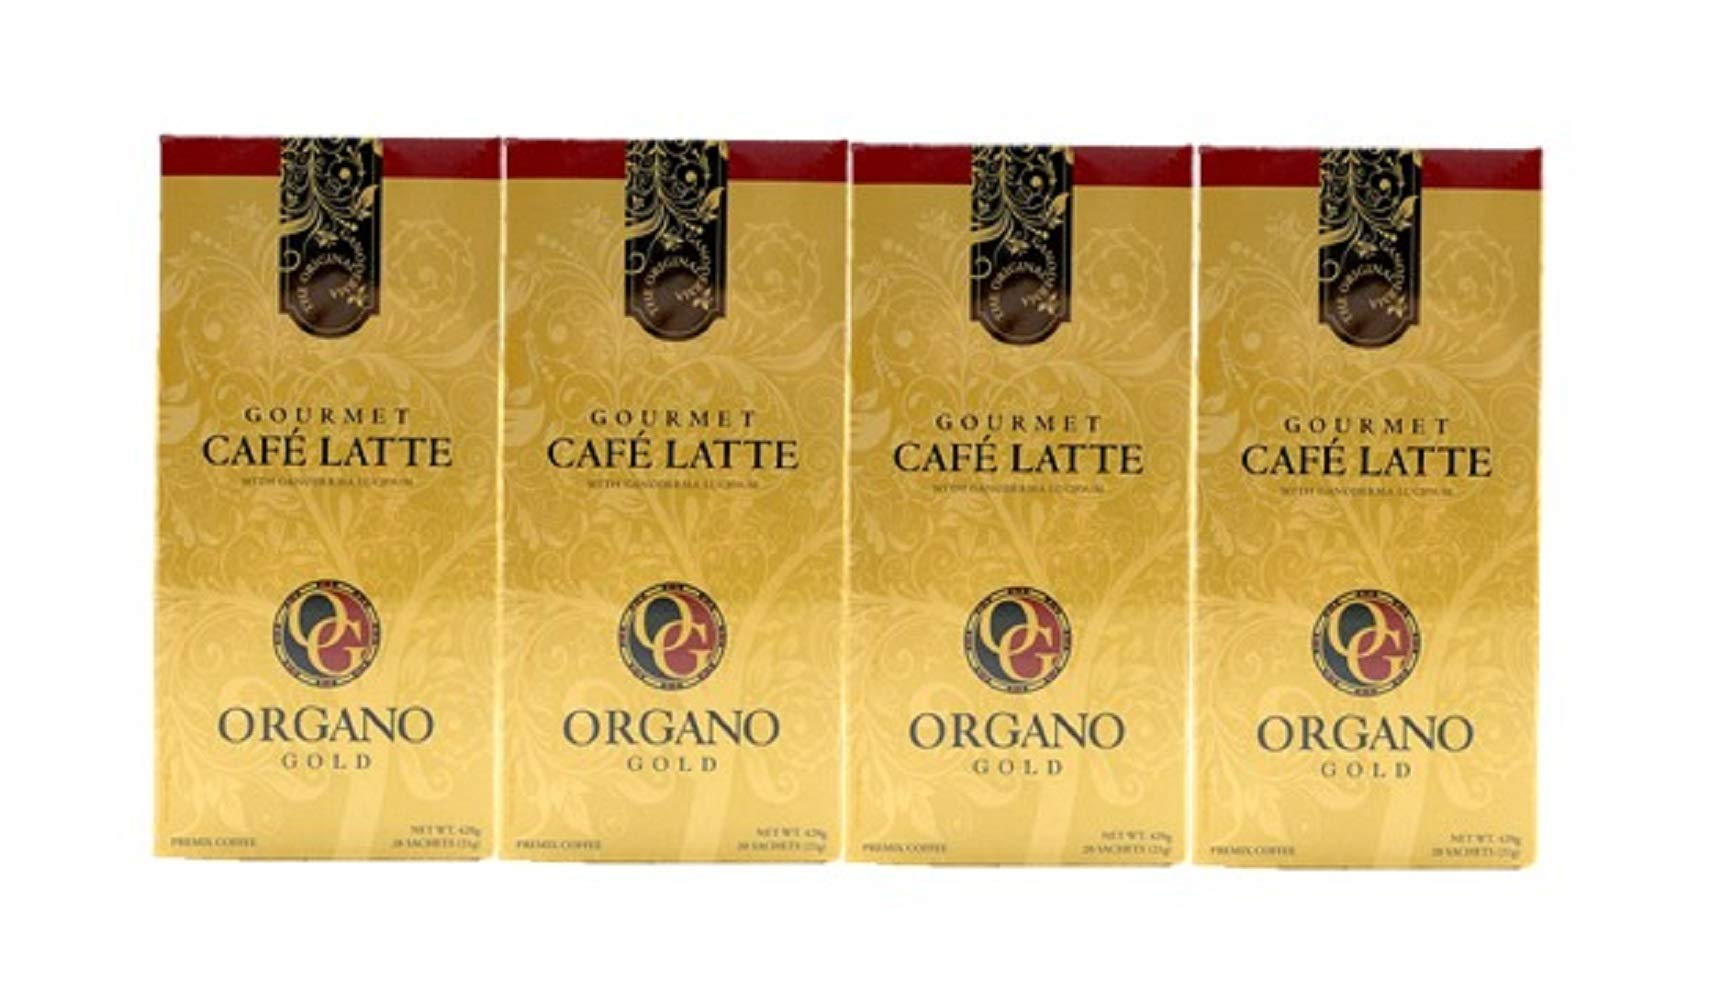 Organo Gold 2 Box Cafe Latte 100% Certified Organic Gourmet Coffee (4 Box) by Organo Gold